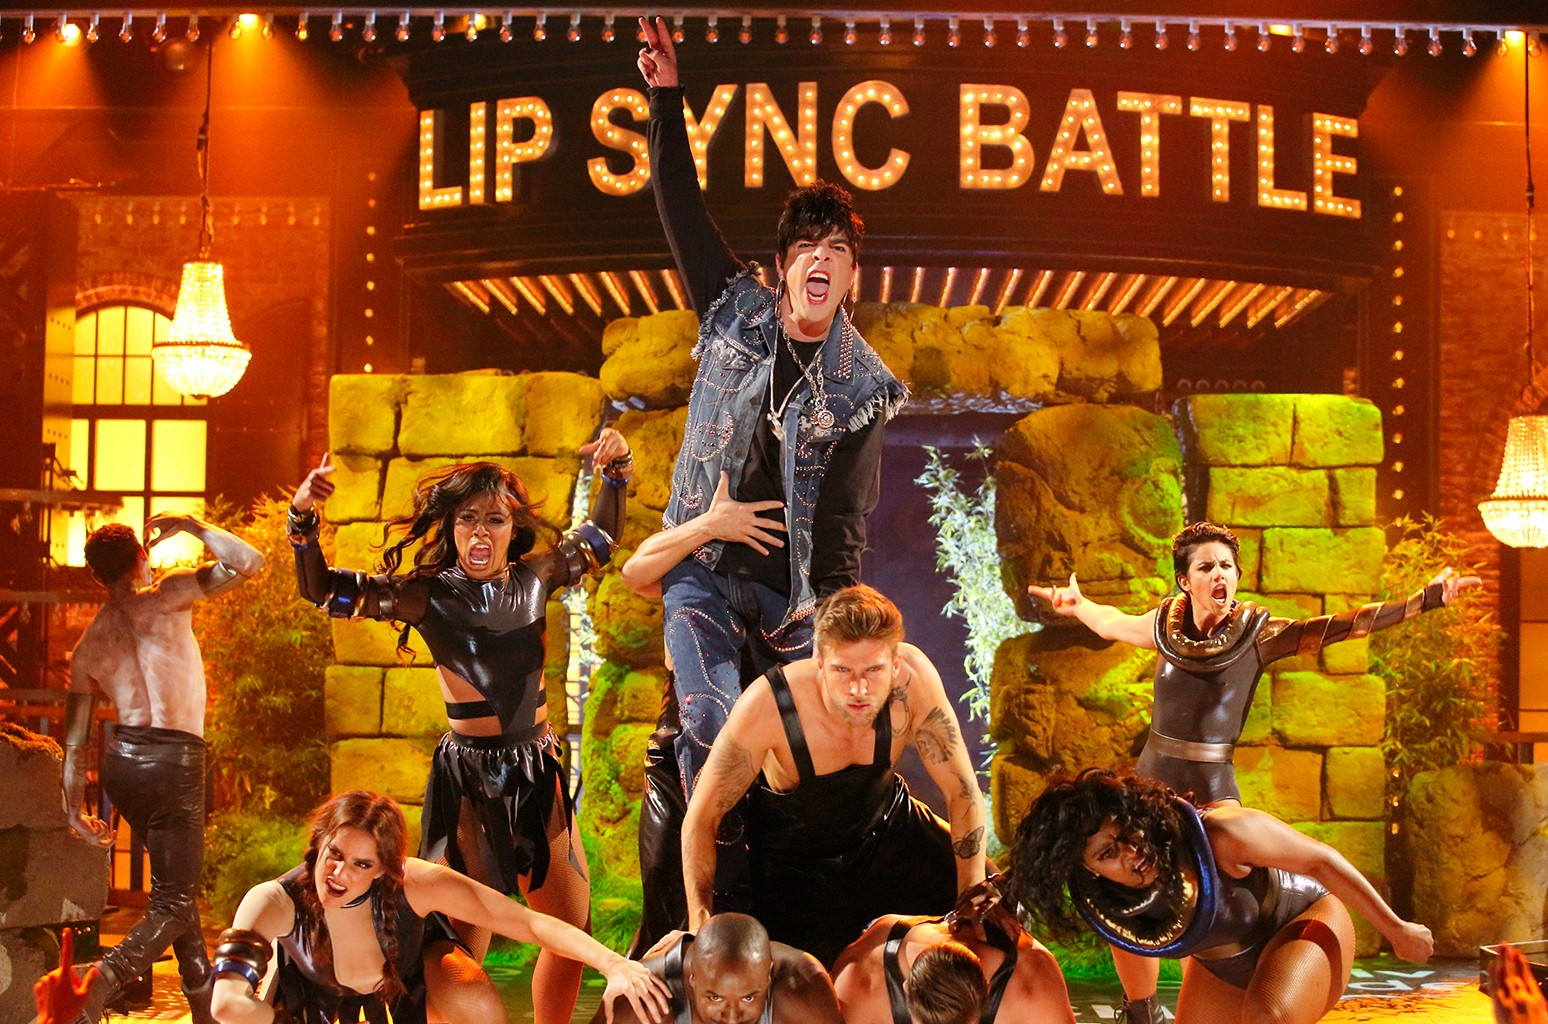 Zachary Quinto on Lip Sync Battle